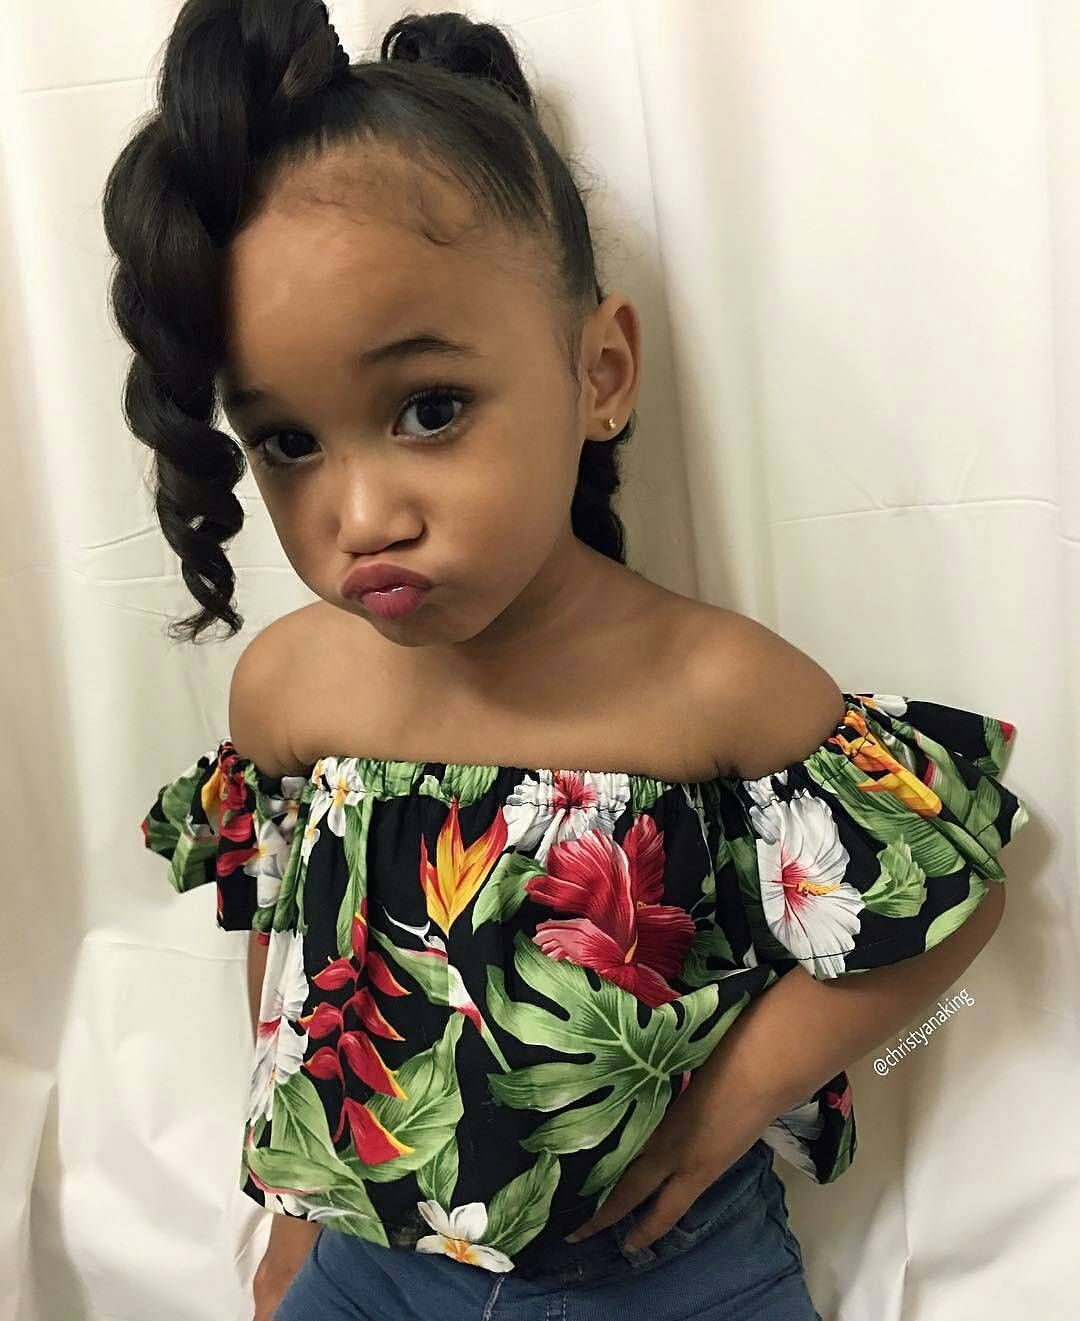 Pin by Aaliyah   on My Girls  Mixed kids hairstyles